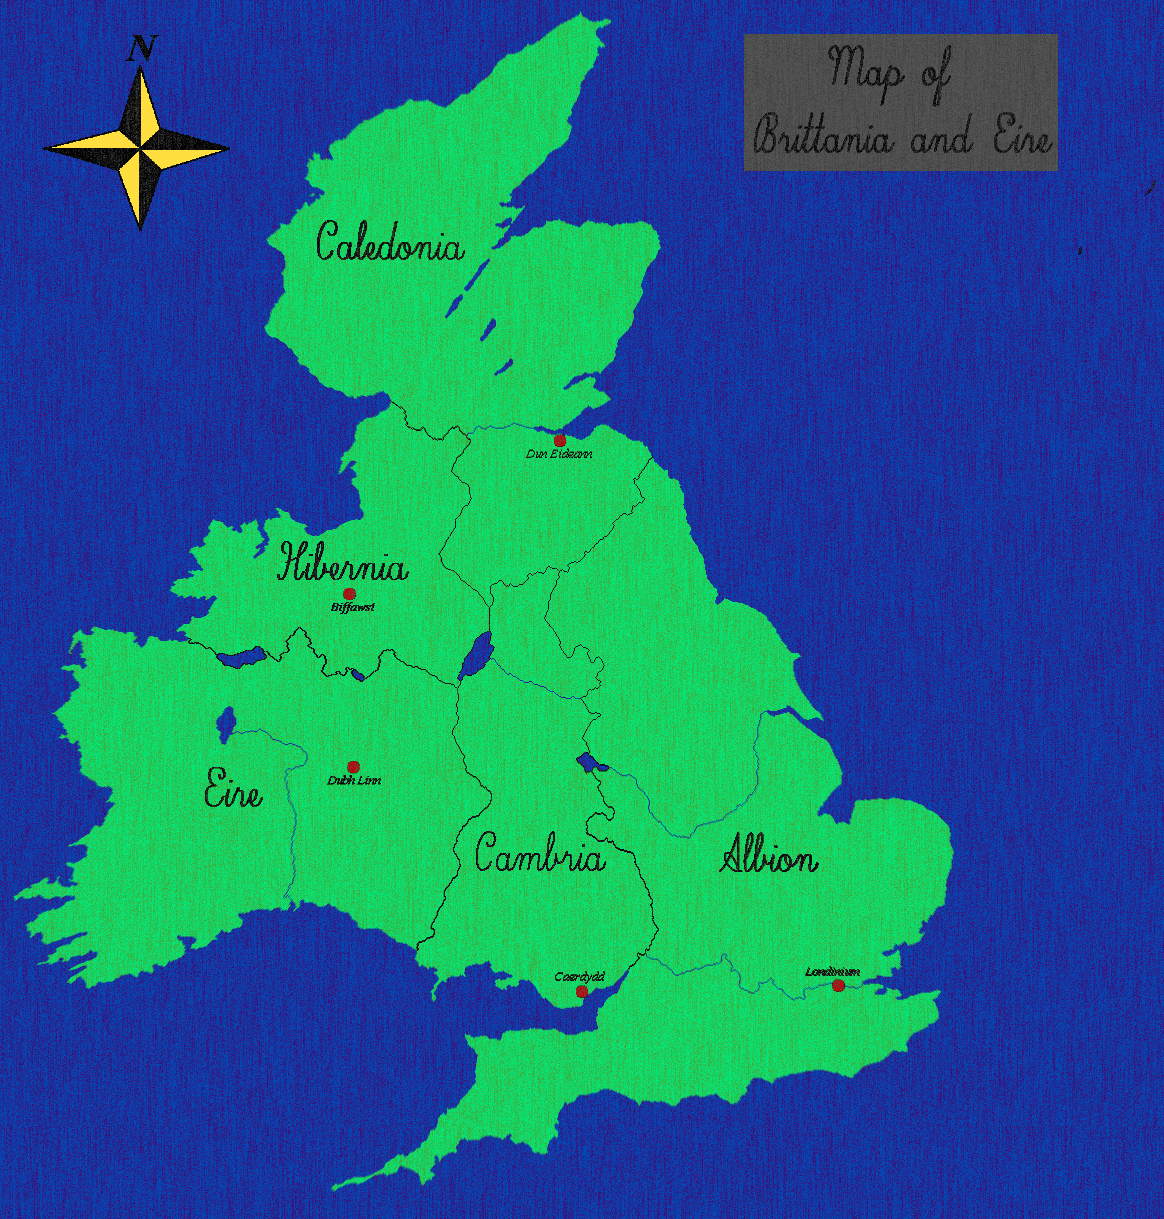 Map of Brittania and Eire by PaladinOfTheSun on deviantART